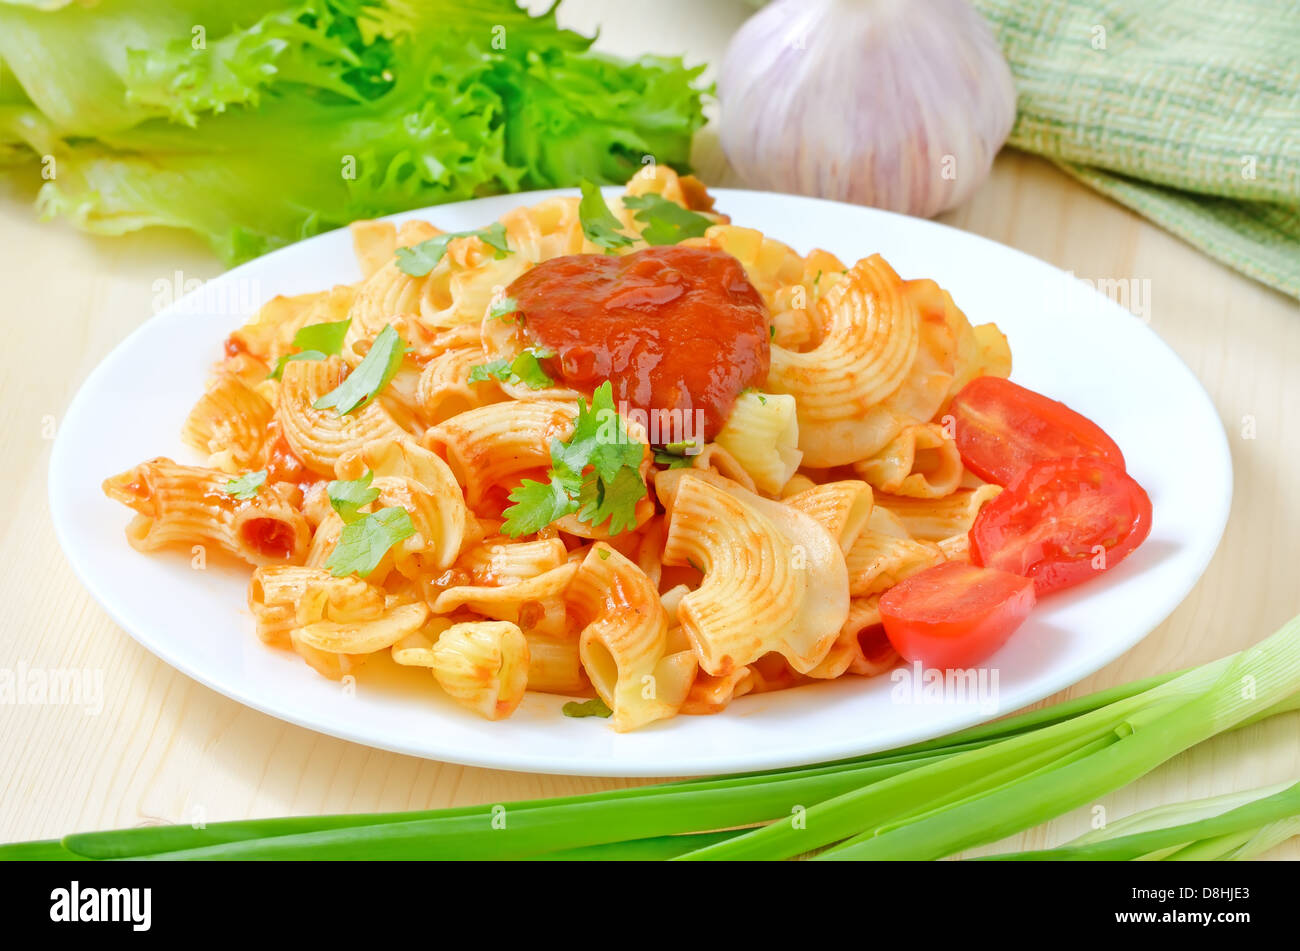 Pasta with ketchup and tomatoes on white plate on the wooden table - Stock Image